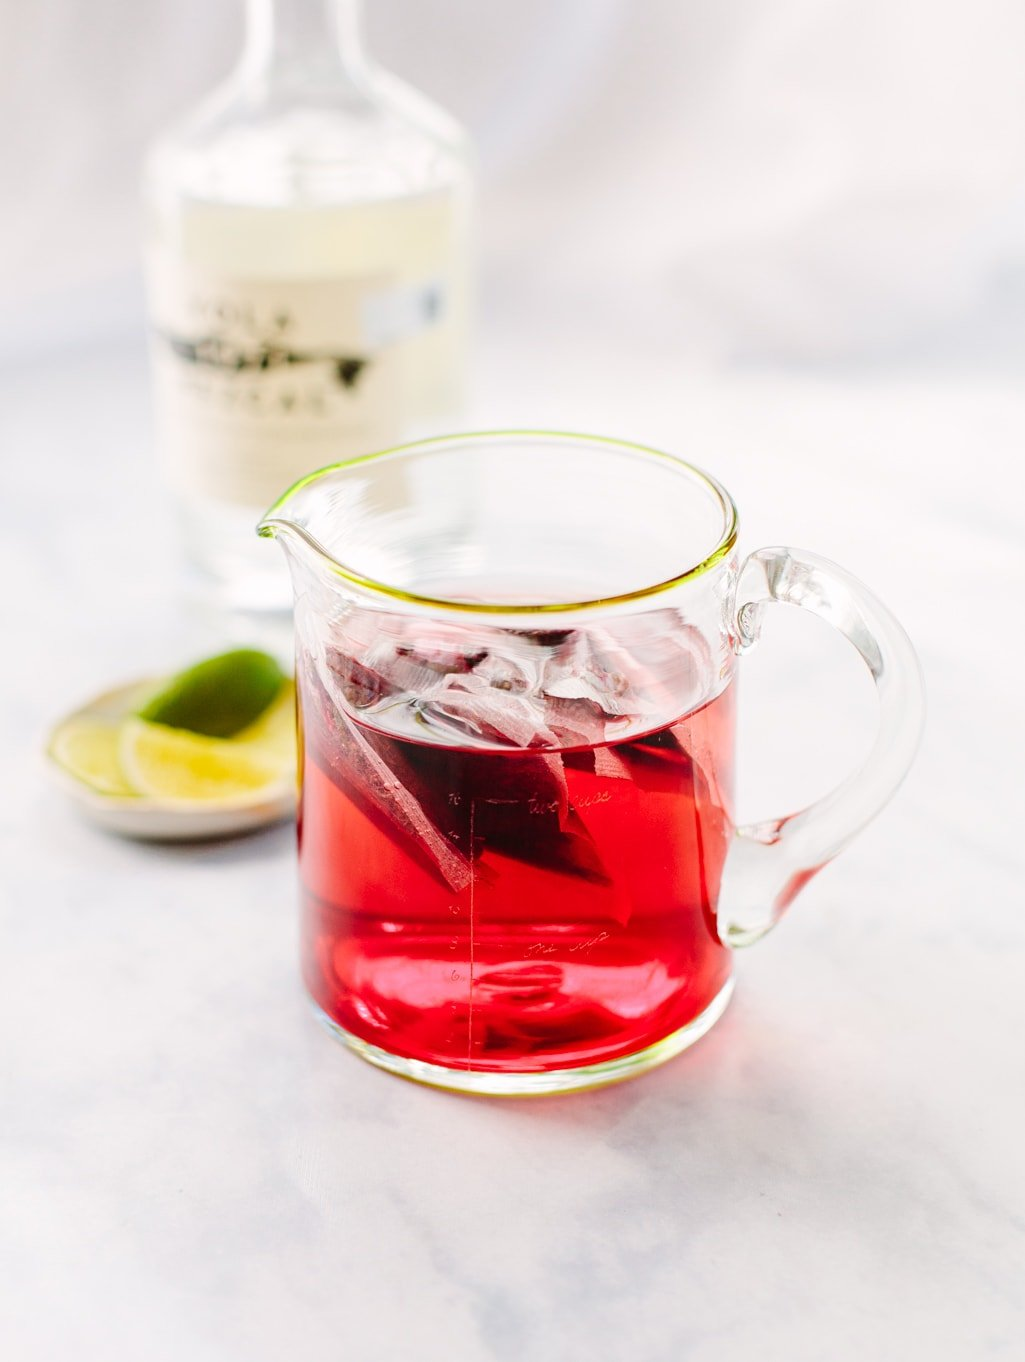 Red Zinger Tea Hibiscus Syrup for Mezcal Margaritas